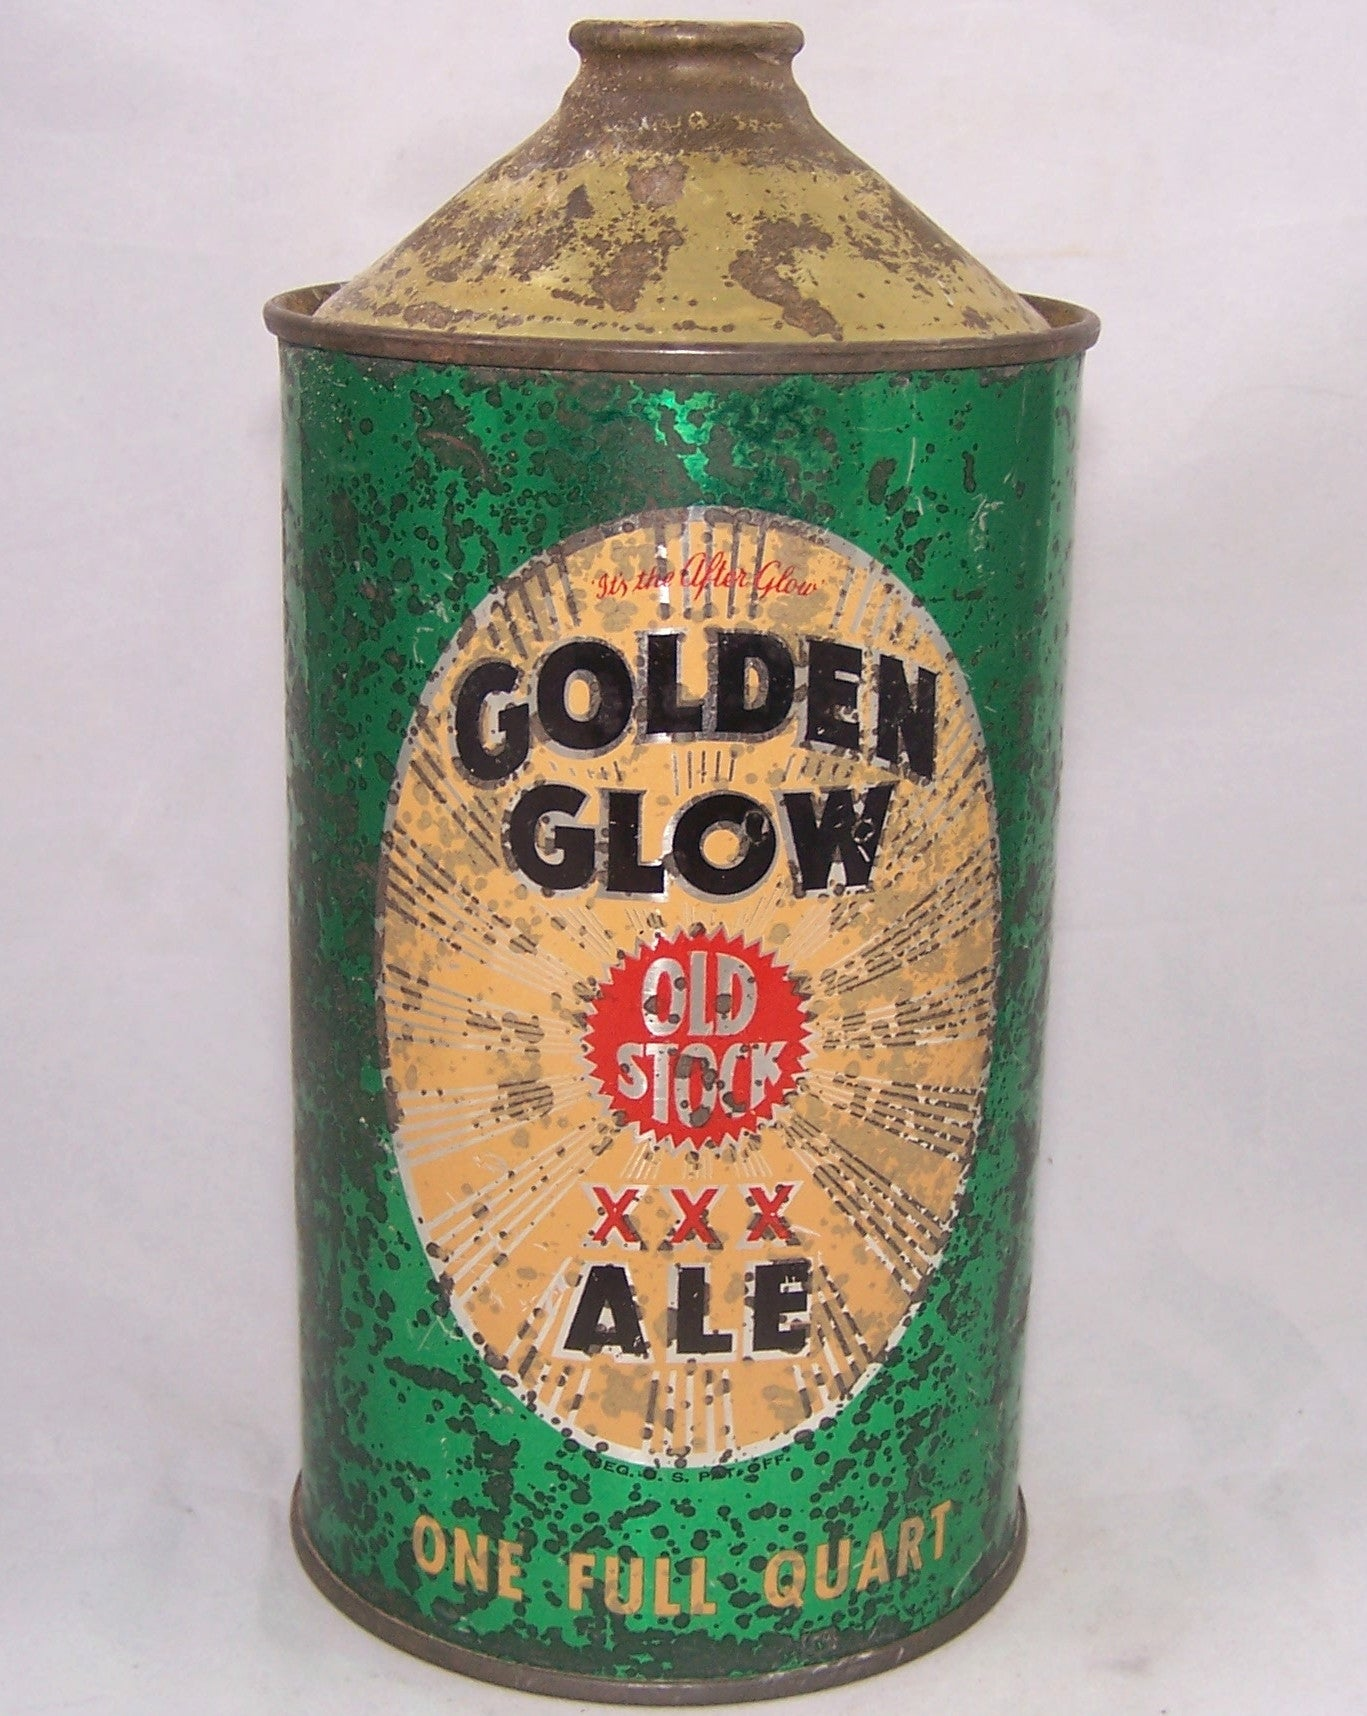 Golden Glow Ale, USBC ? Grade 2 Sold on 11/26/16